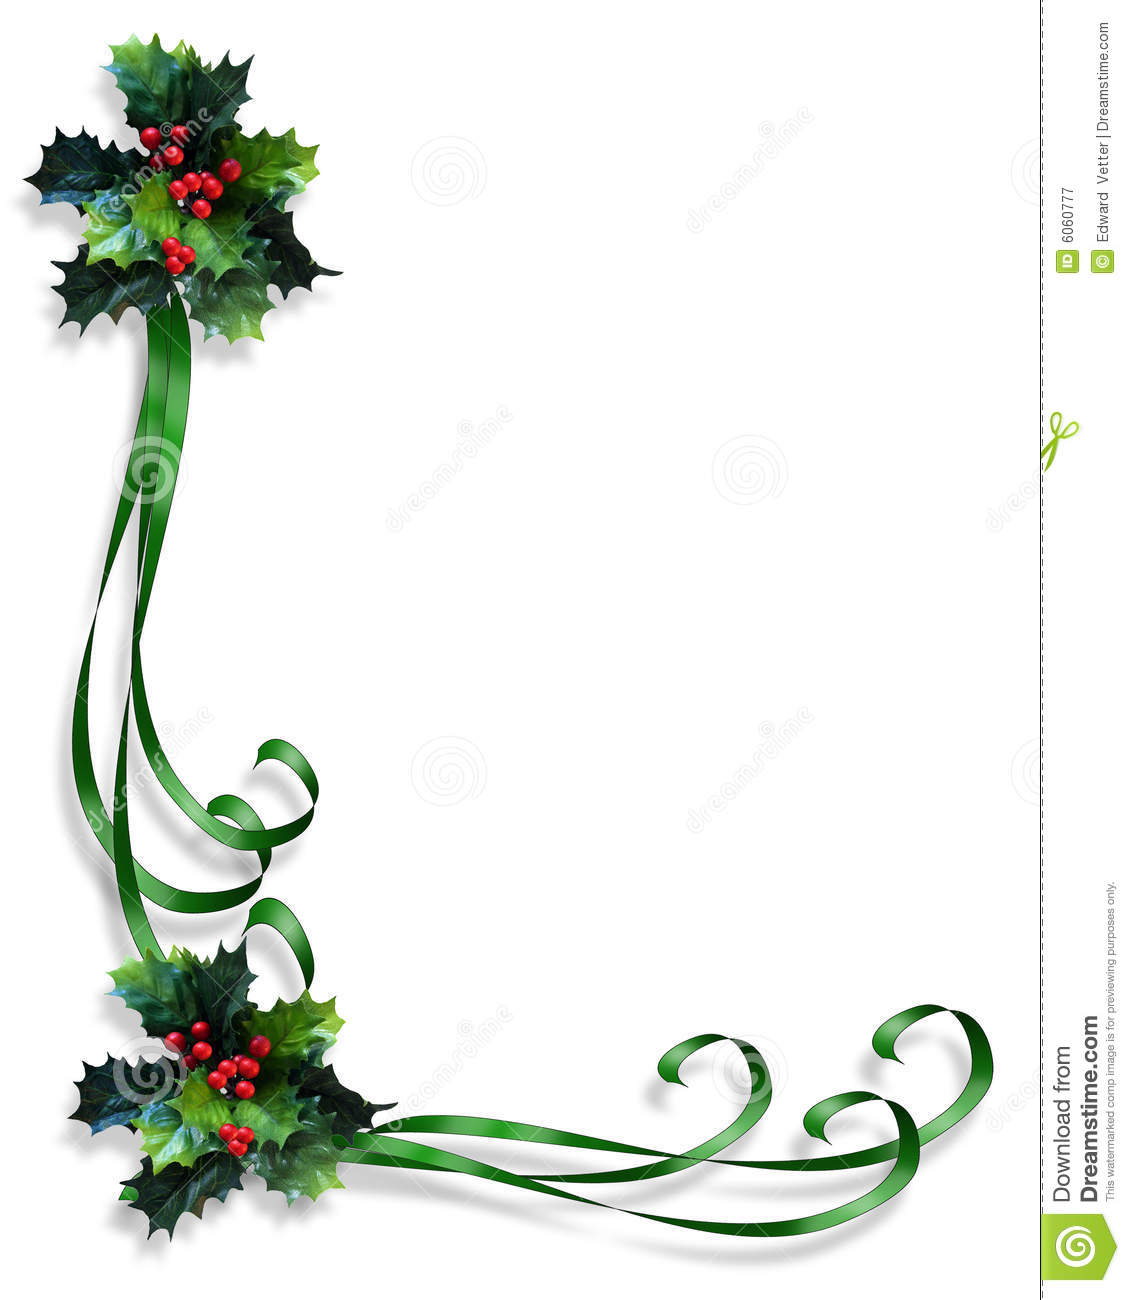 Free clipart borders christmas - ClipartFest banner free download